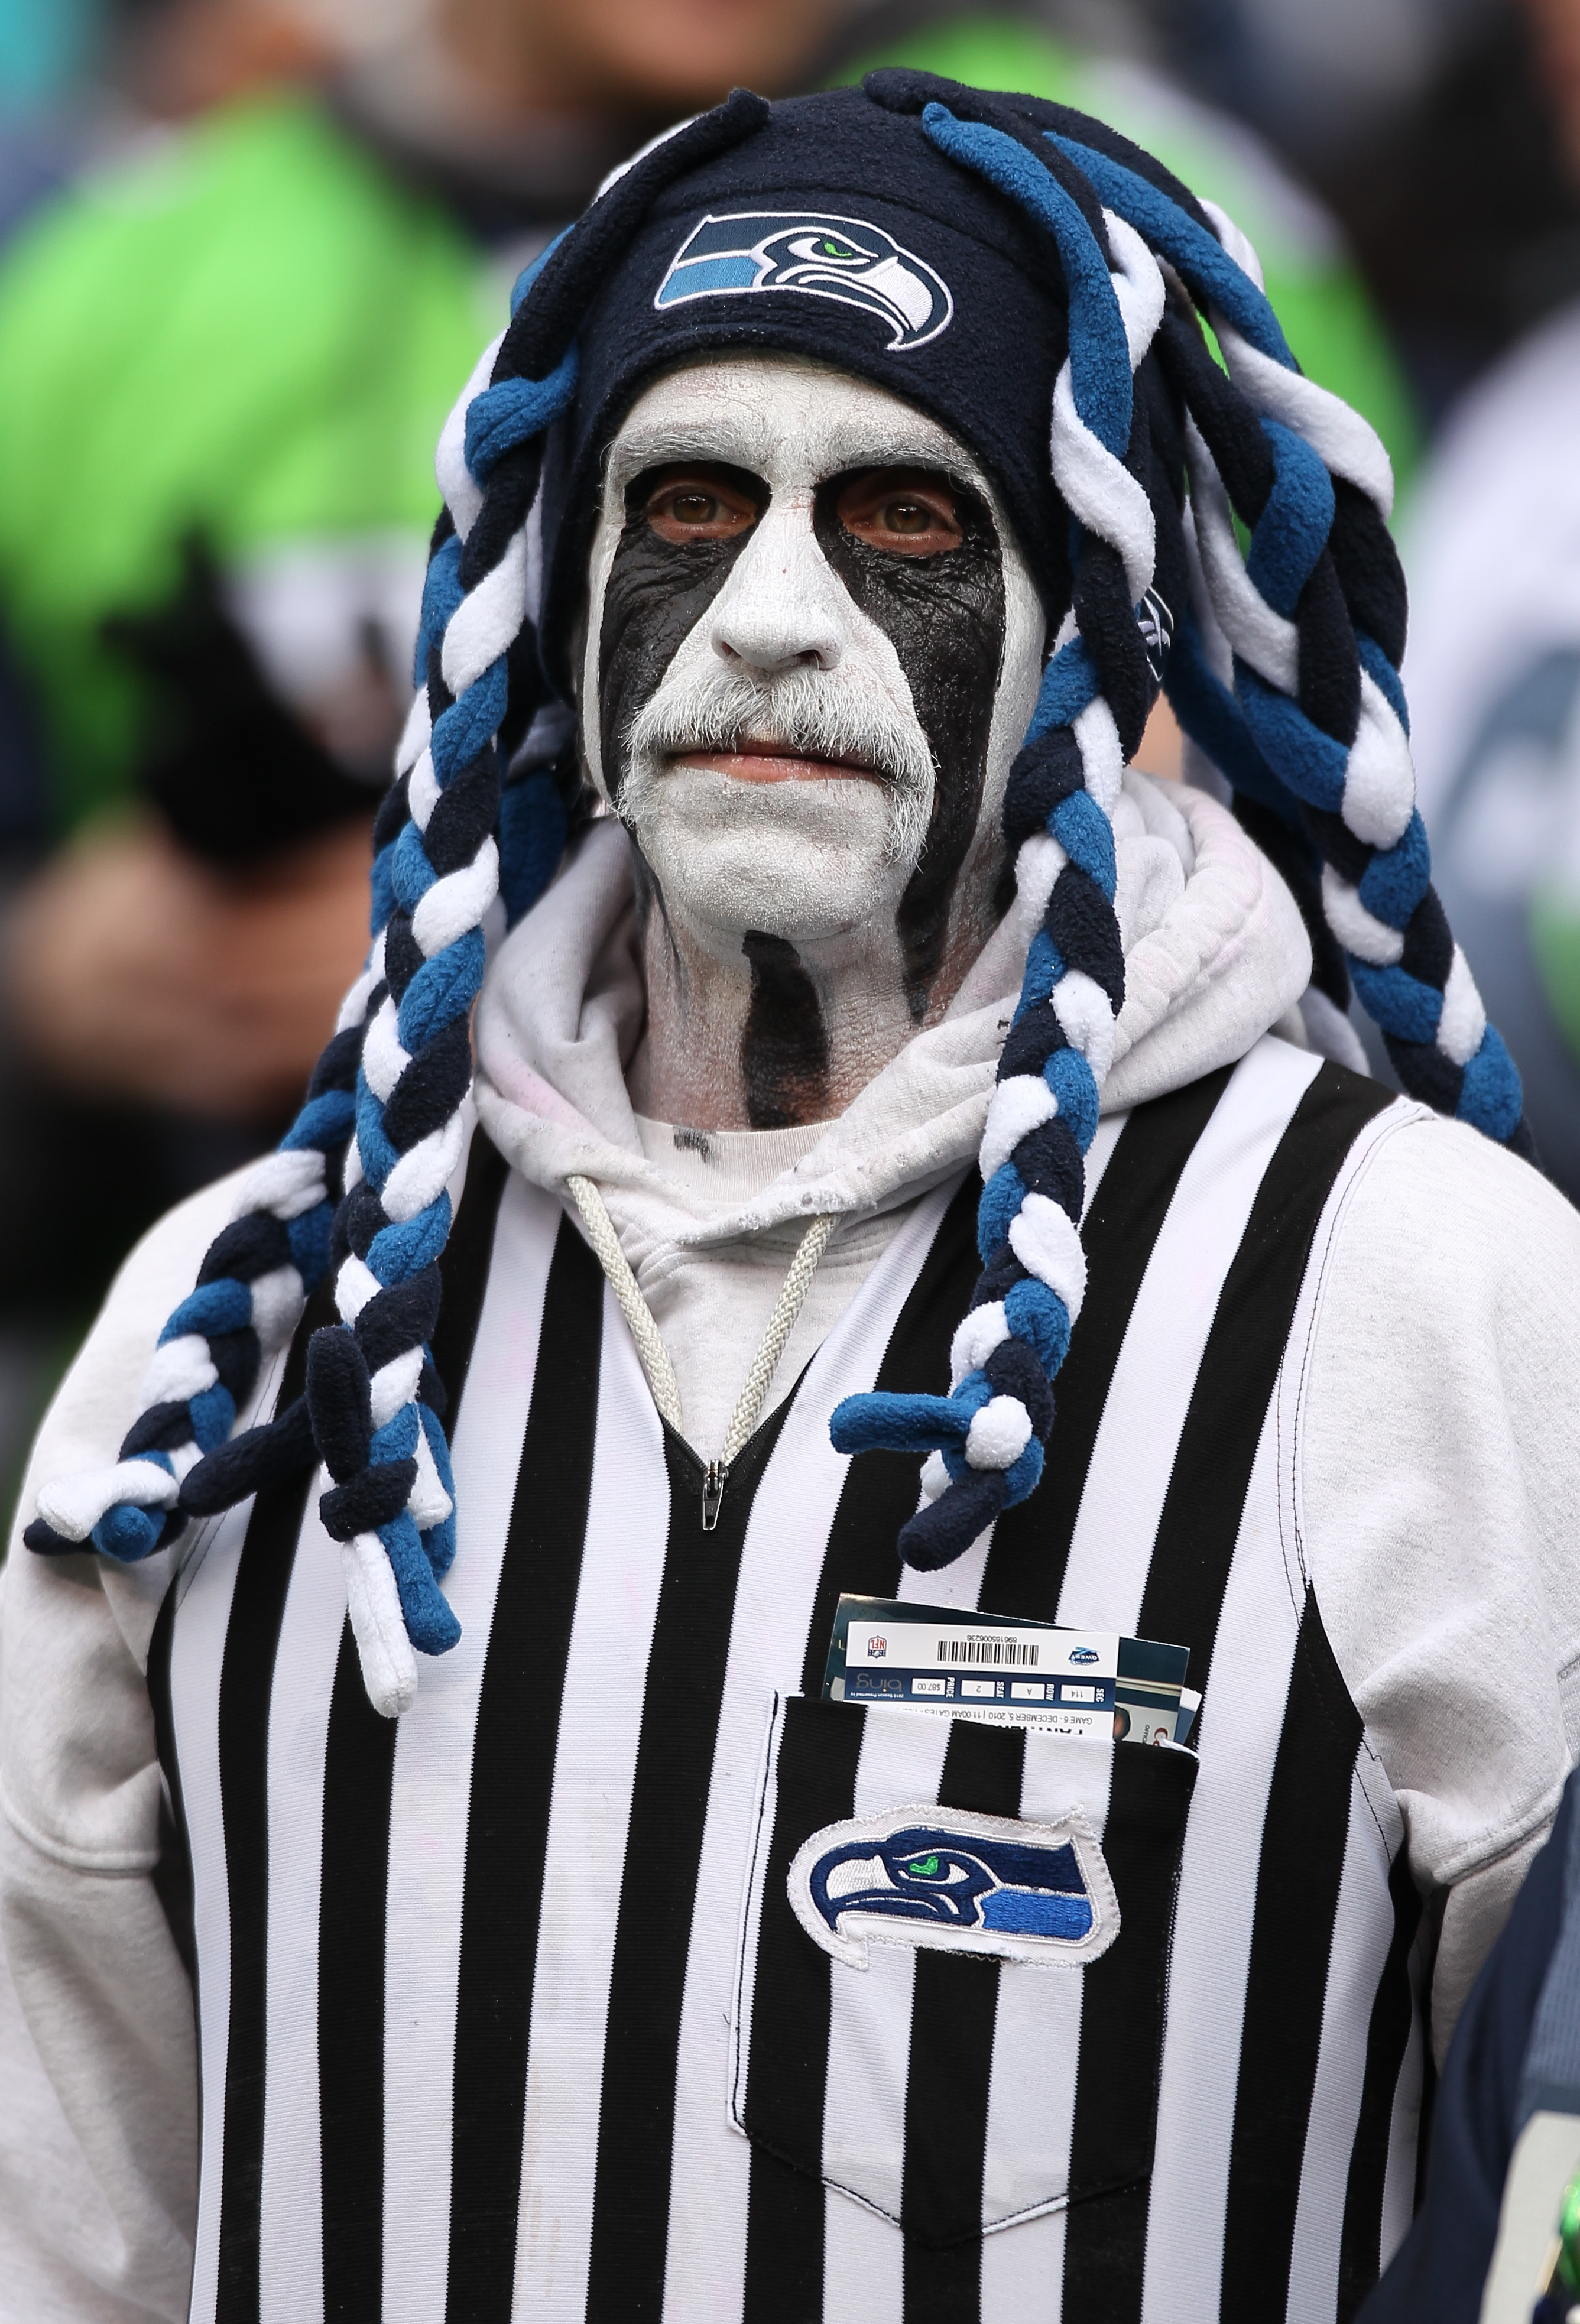 SEATTLE - DECEMBER 05:  A fan of the Seattle Seahawks looks on during the game against the Carolina Panthers at Qwest Field on December 5, 2010 in Seattle, Washington. The Seahawks won, 31-14. (Photo by Otto Greule Jr/Getty Images)